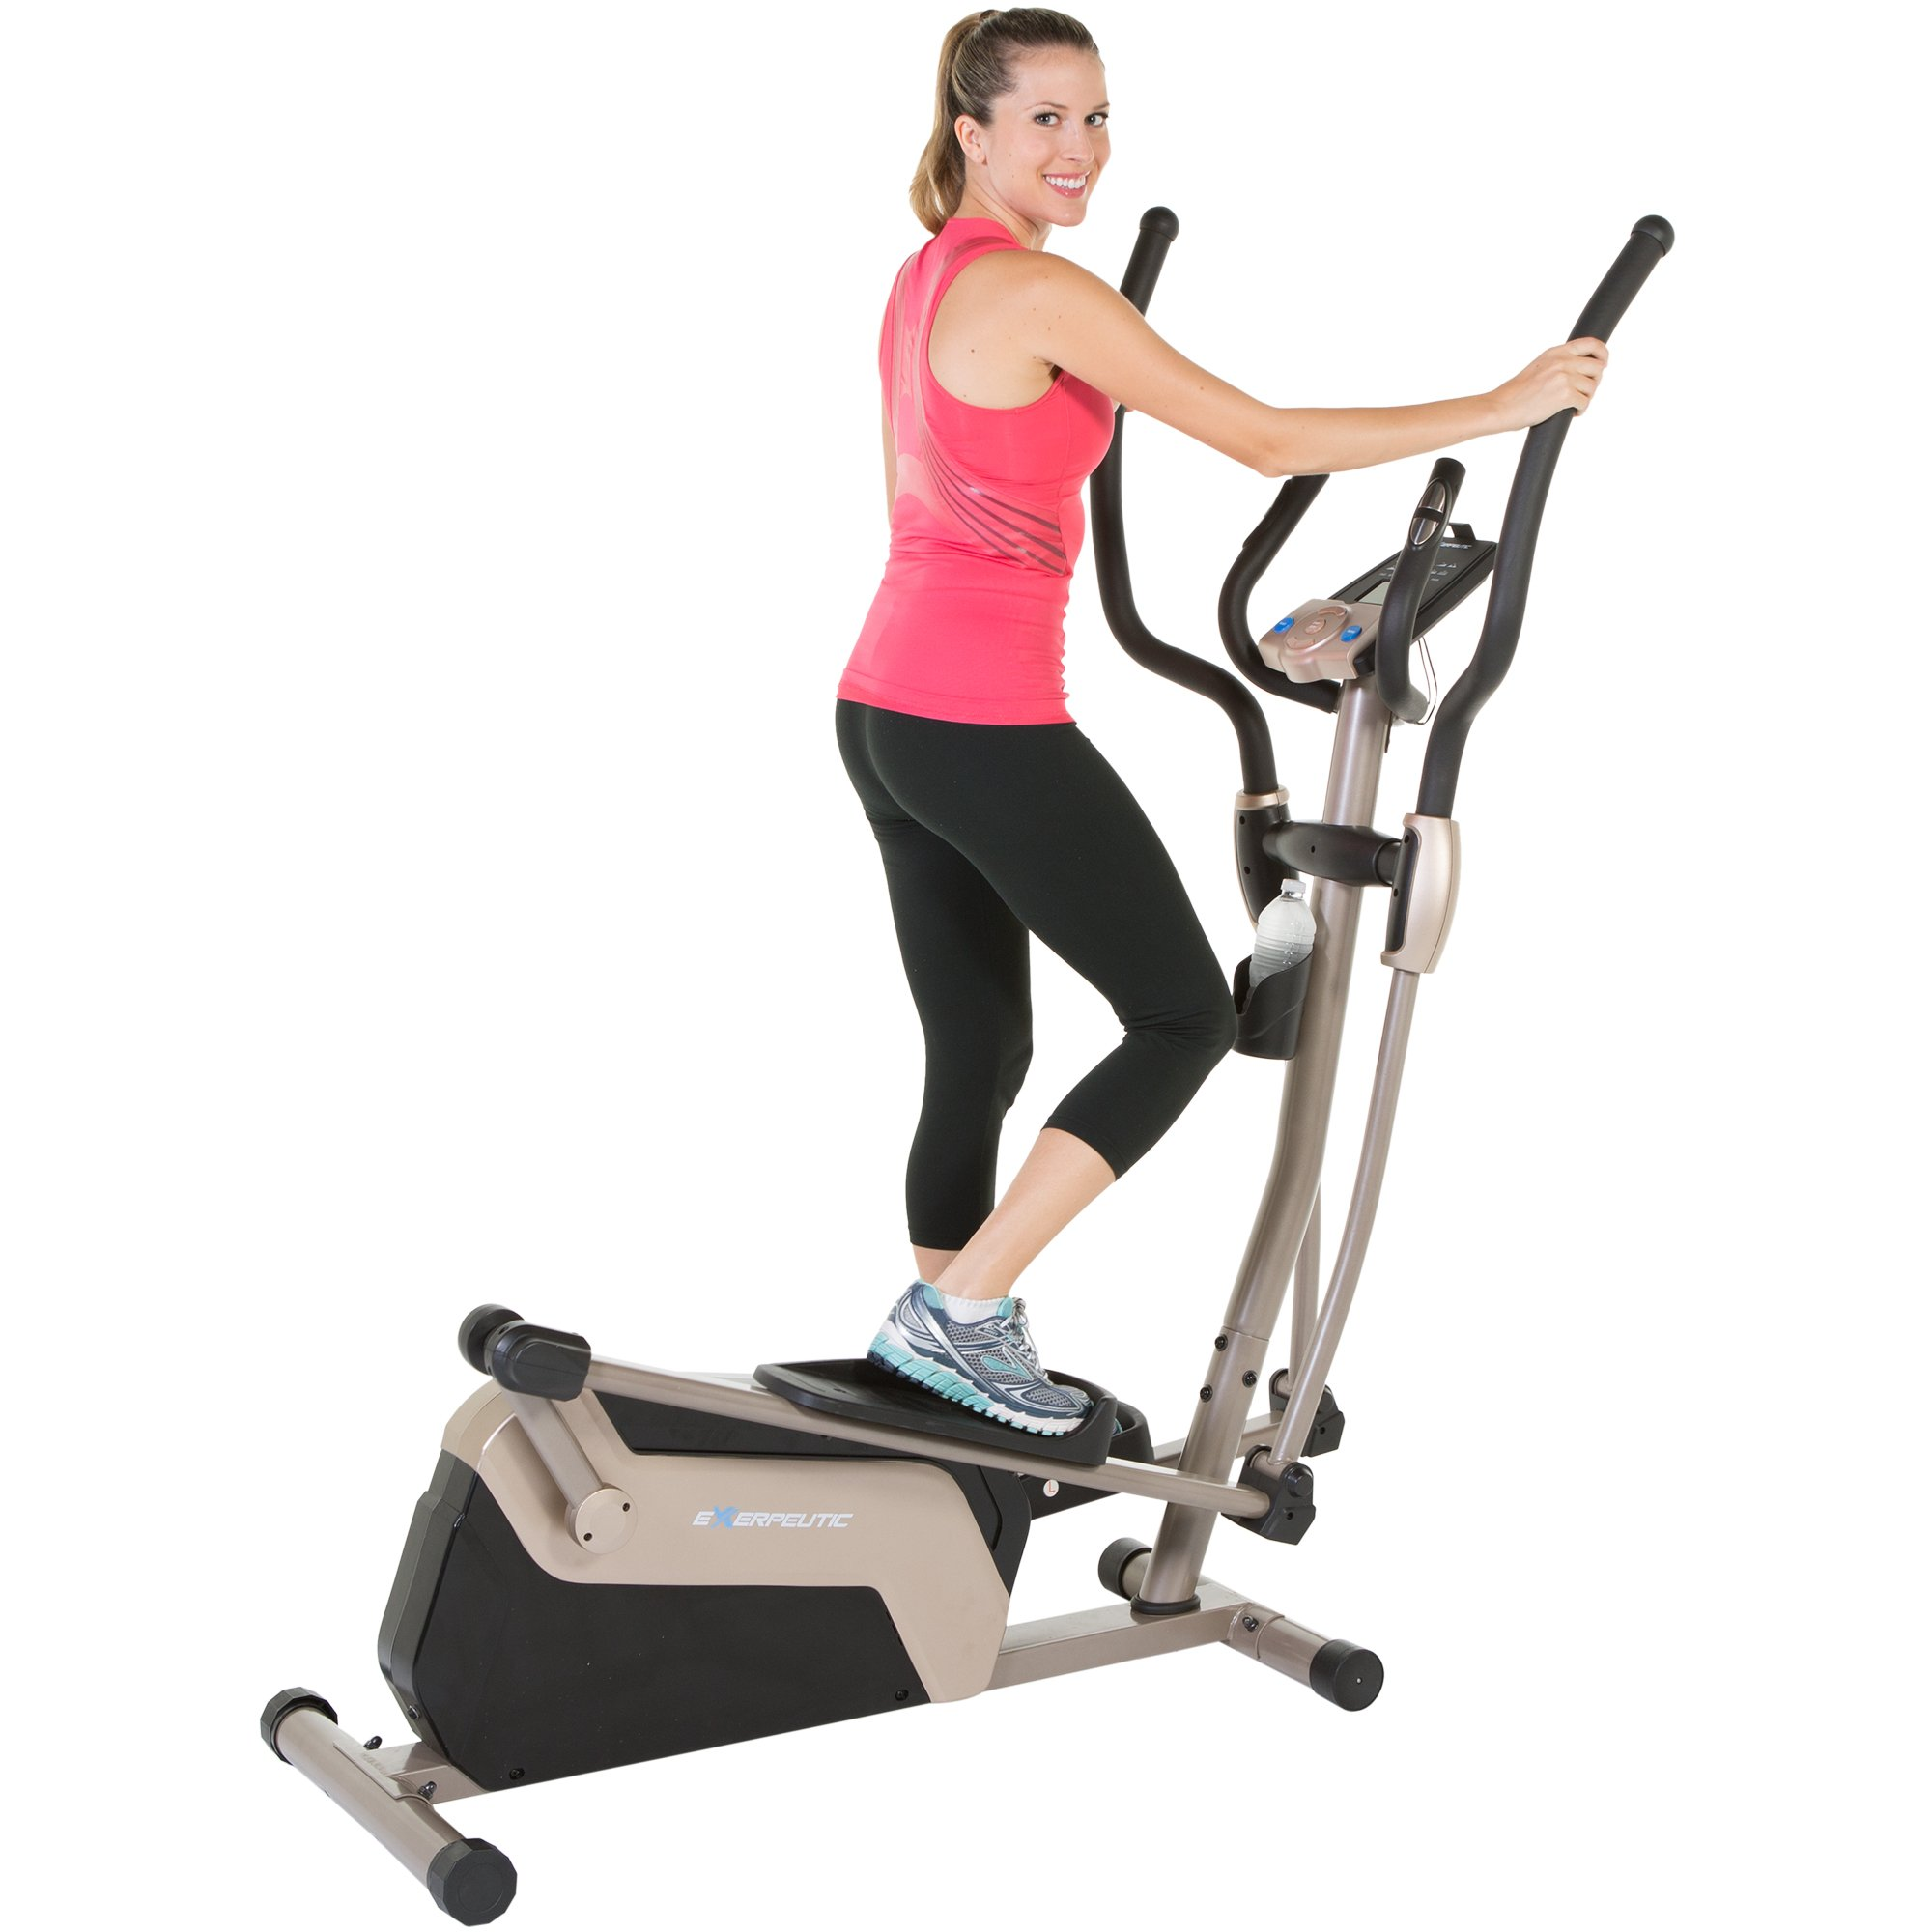 Exerpeutic 1318 5000 Magnetic Elliptical Trainer with Double Transmission Drive by Exerpeutic (Image #1)